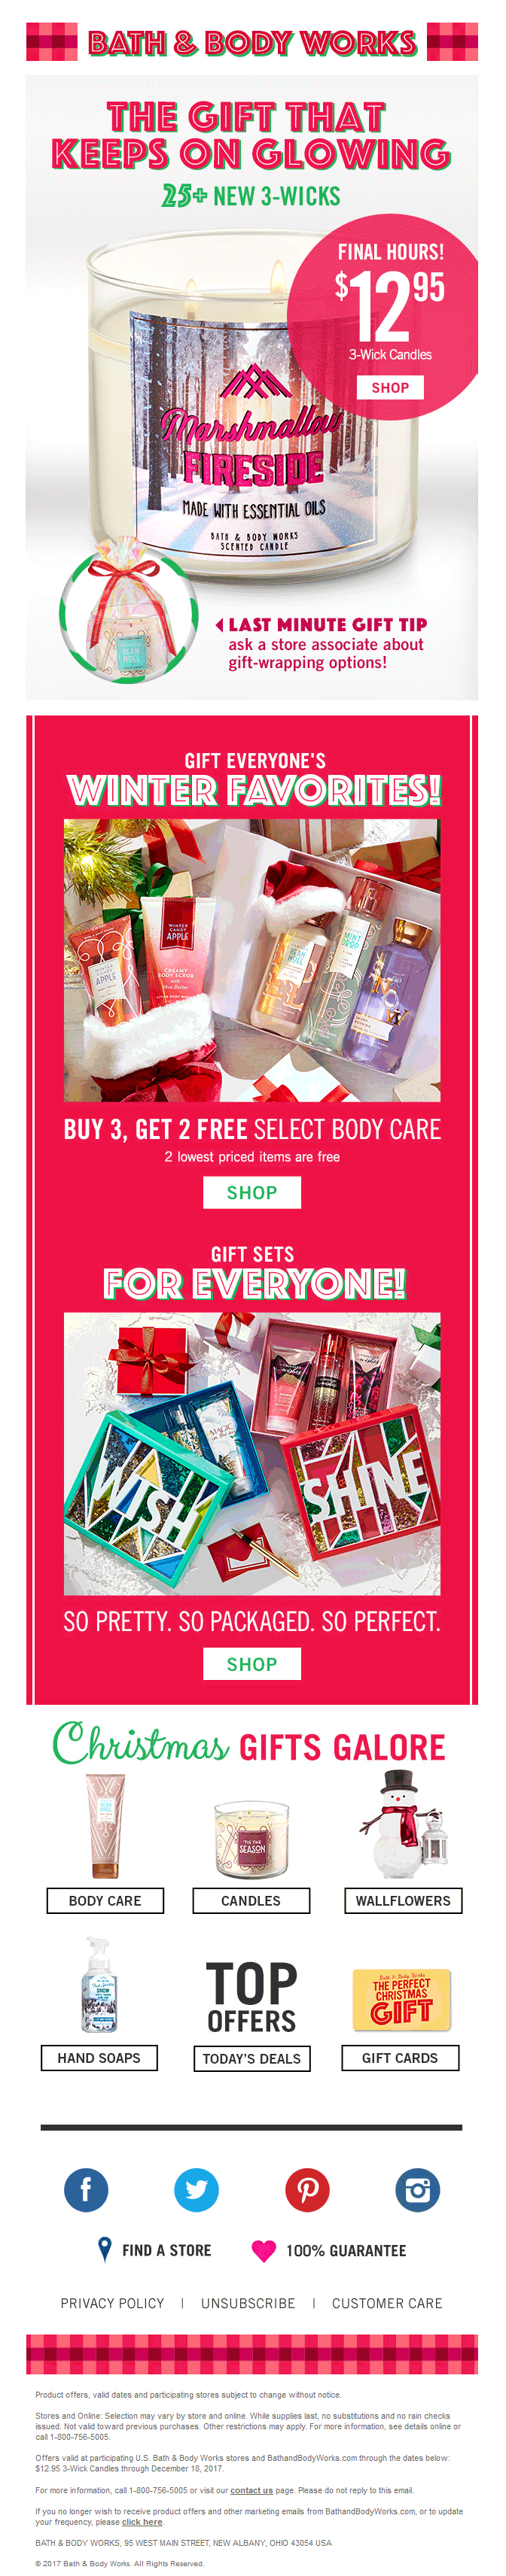 Bath and Body Works email